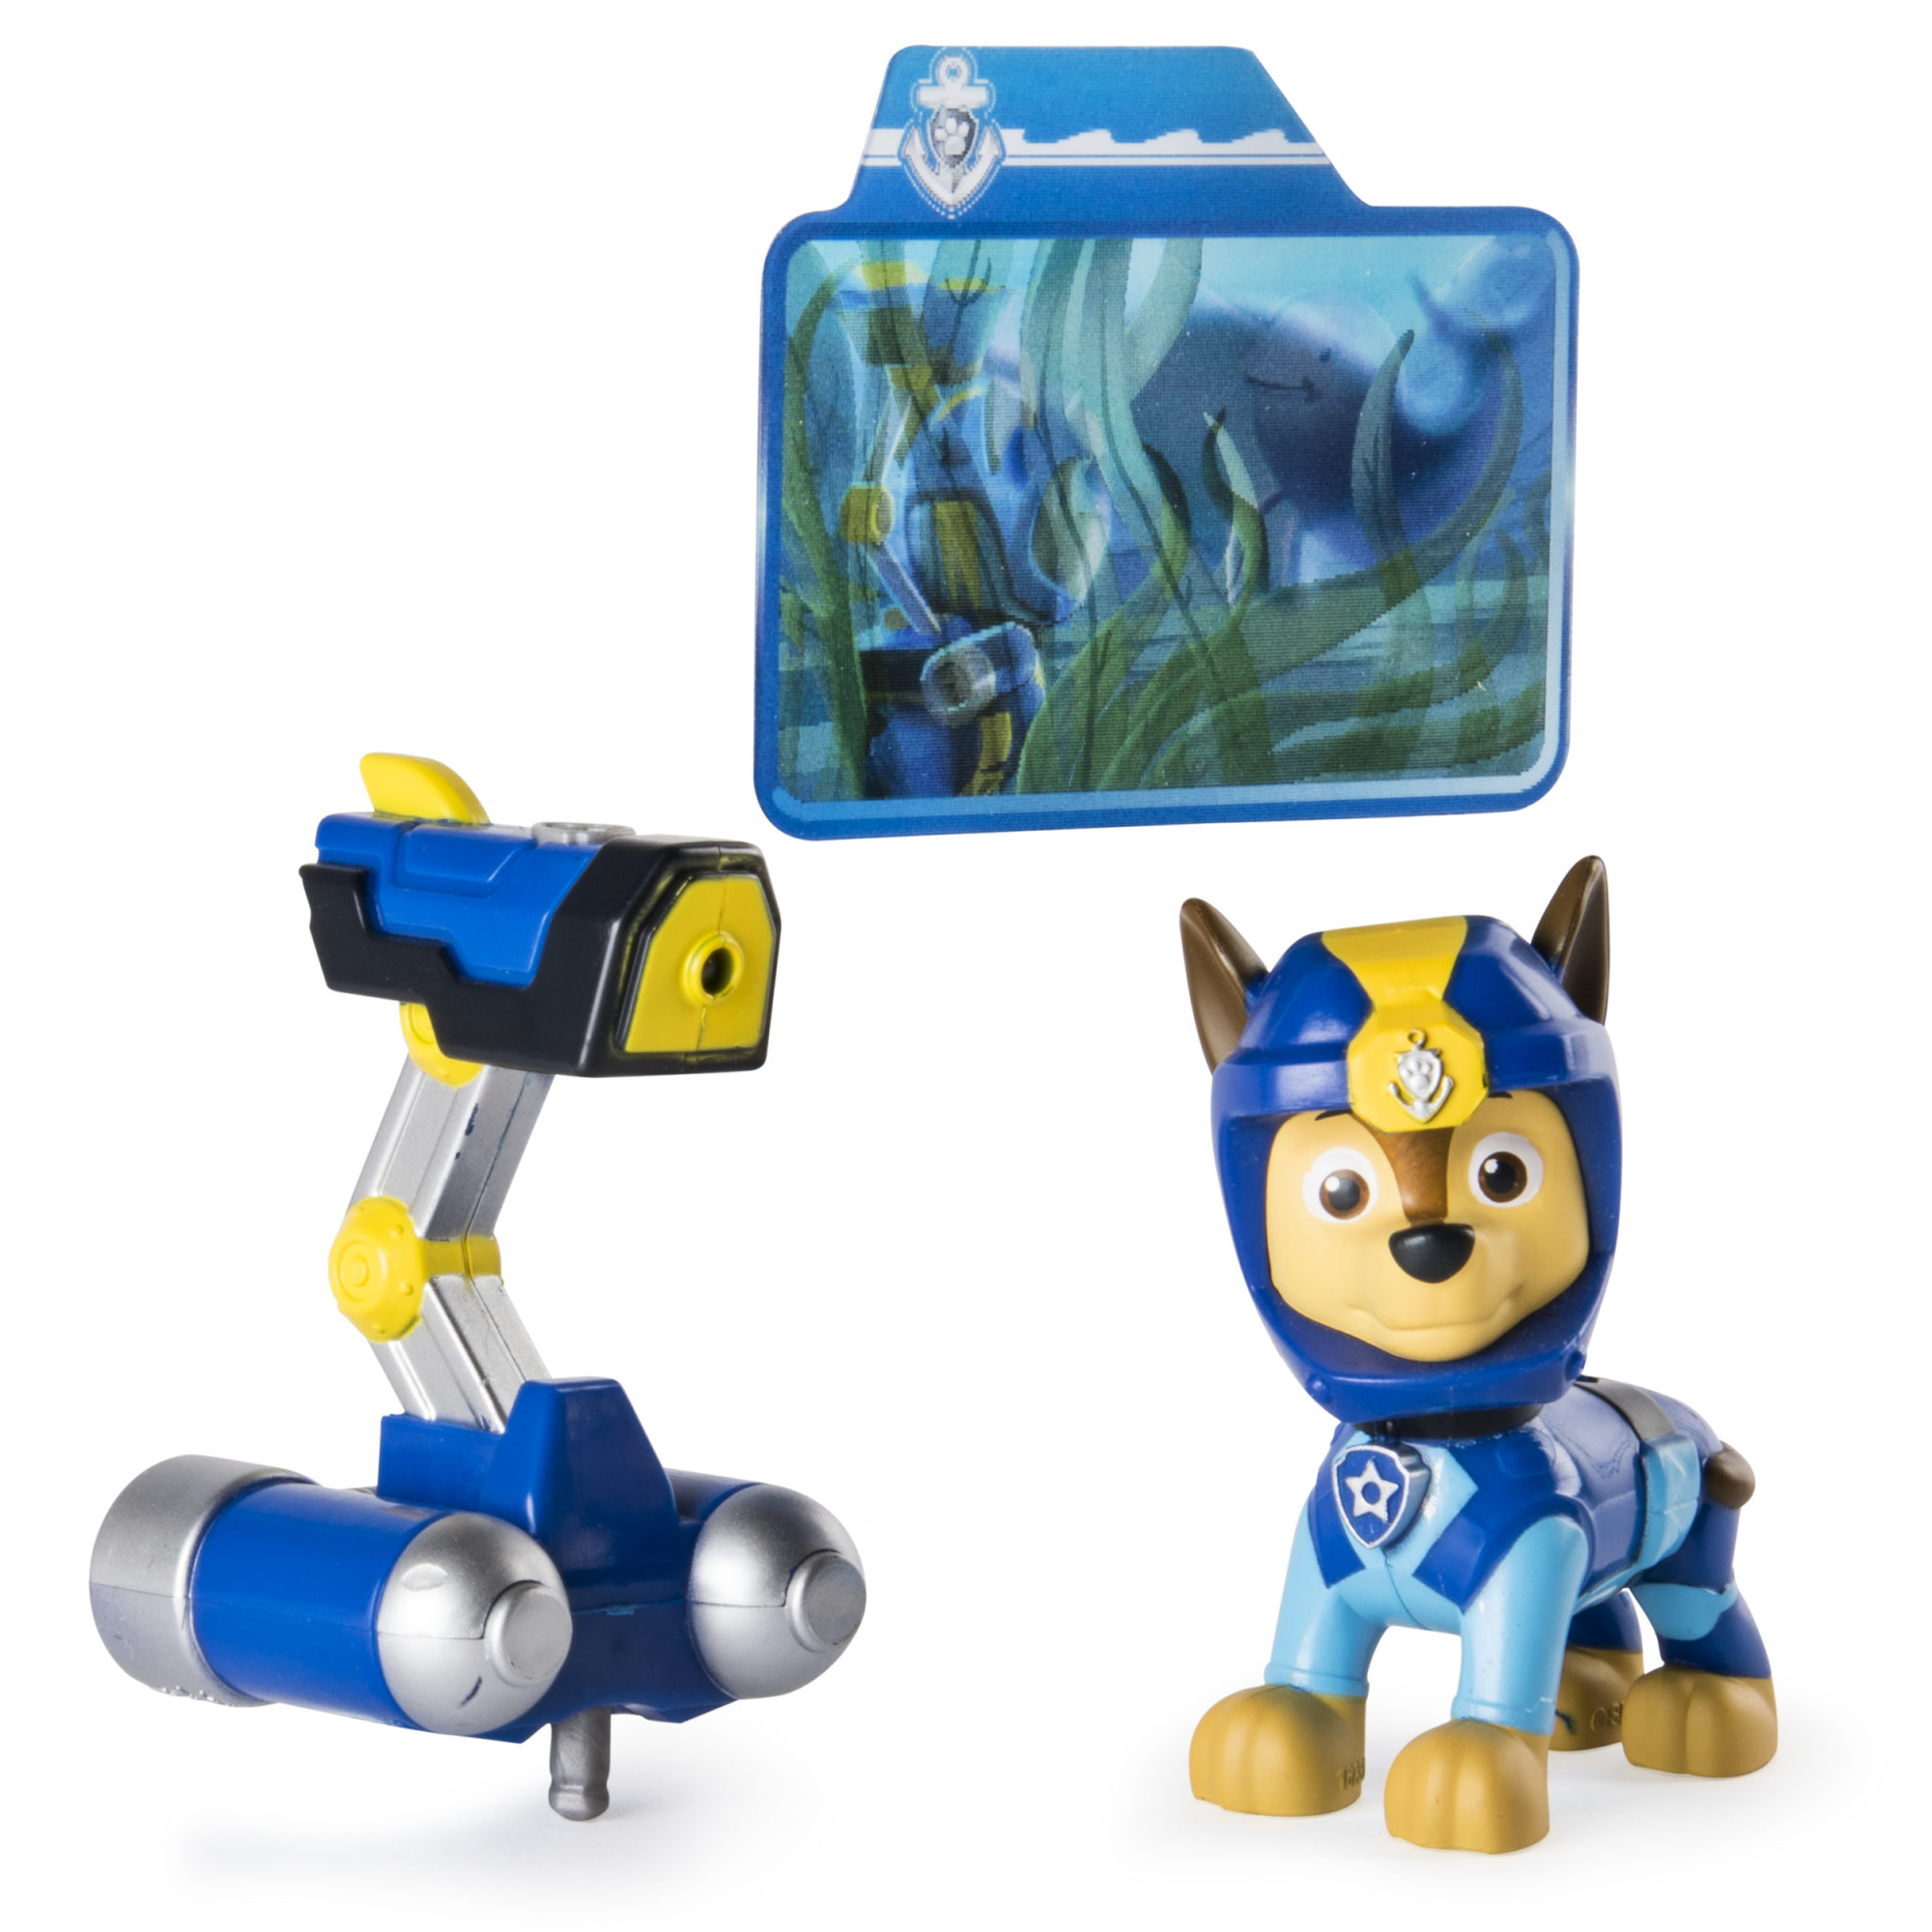 Walmart: Paw Patrol Sea Patrol – Light Up Chase with Pup Pack and Mission Card for $6.98 (Reg. $19.95)